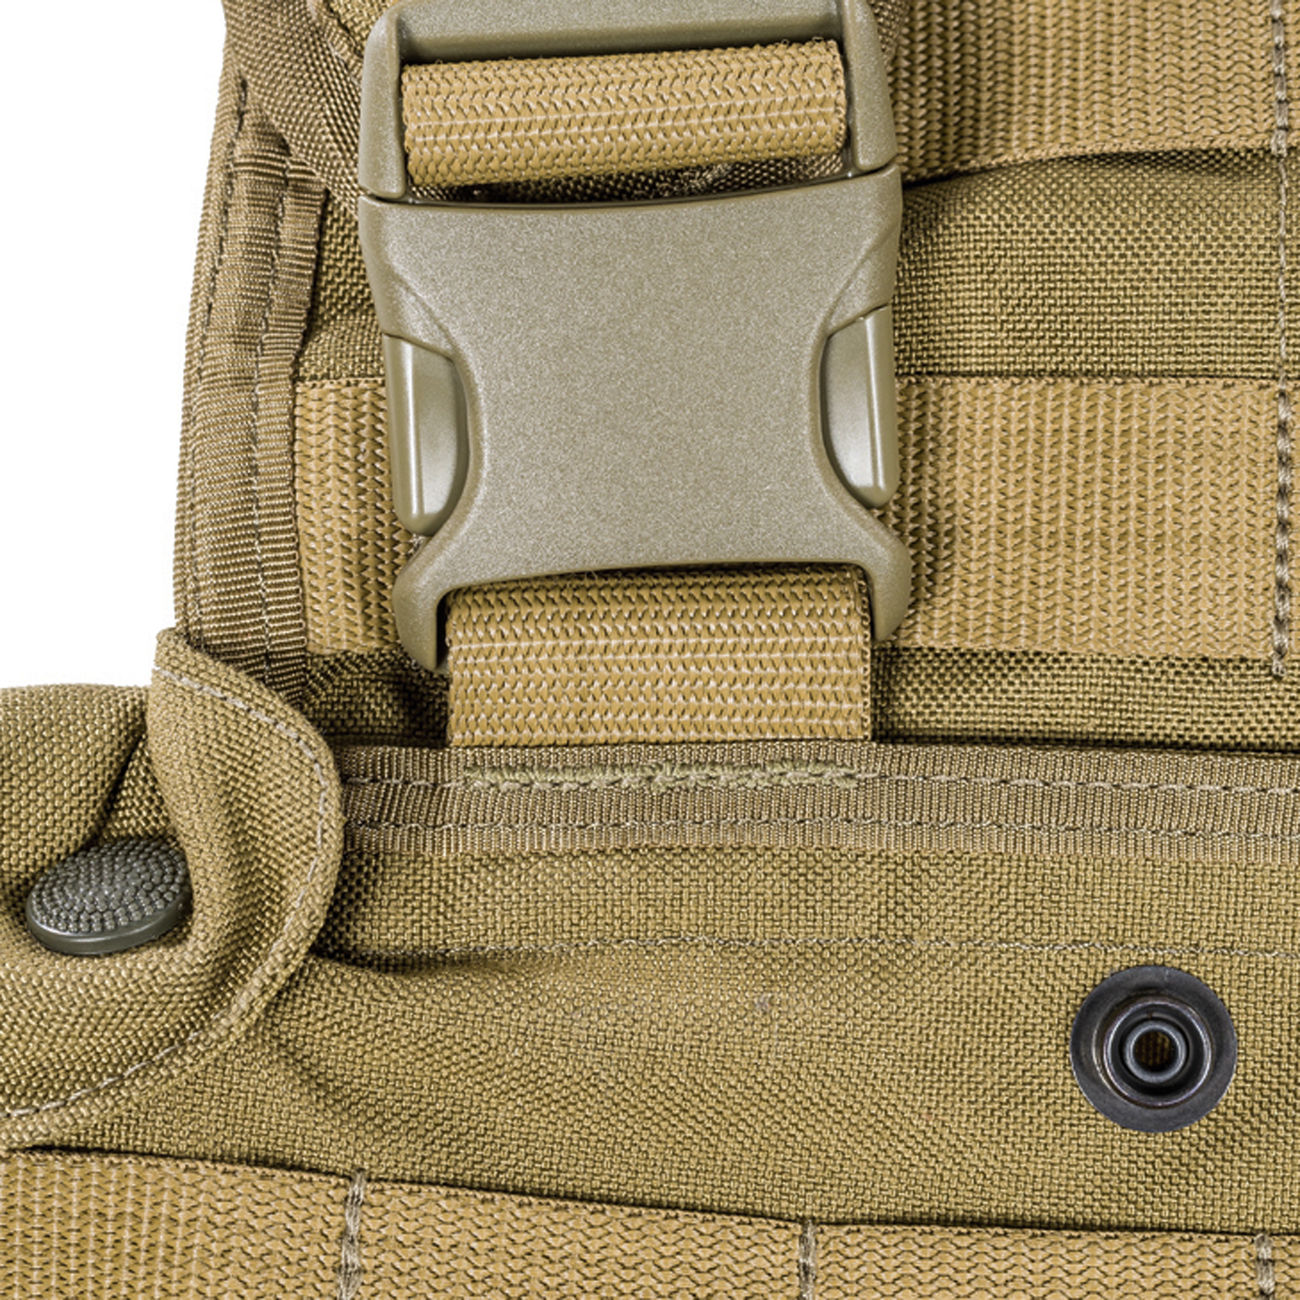 TT Chest Rig Modular coyote brown 4